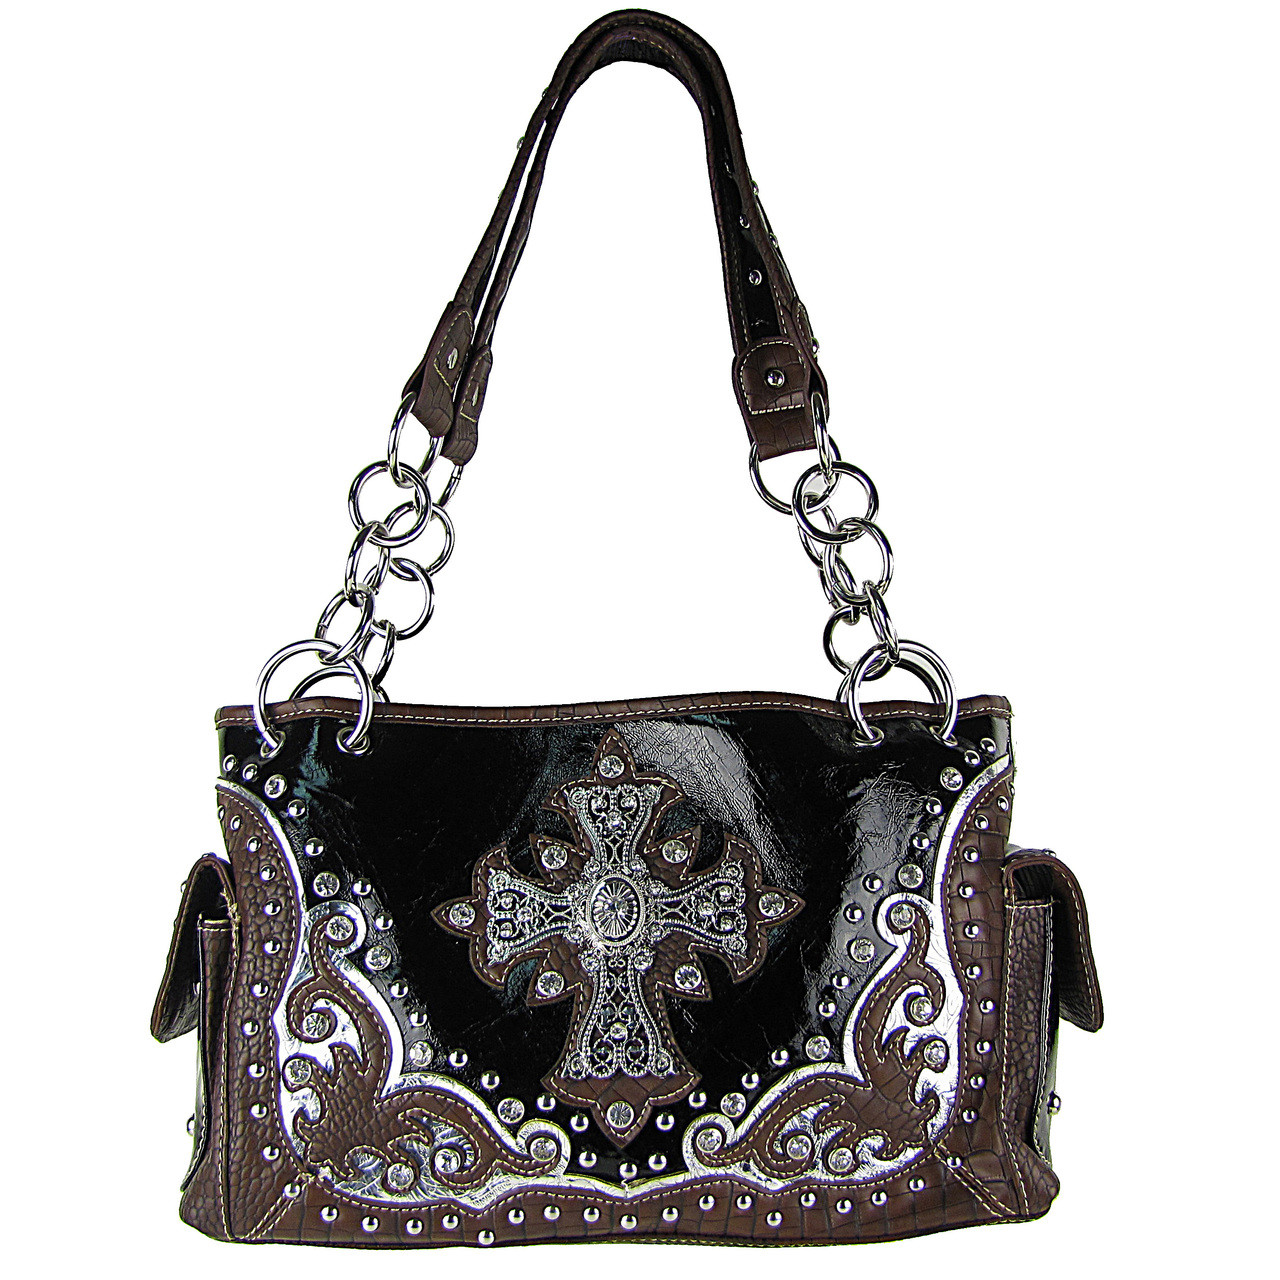 BLACK WESTERN STUDDED RHINESTONE CROSS SHOULDER HANDBAG HB1-CHF0032BLK